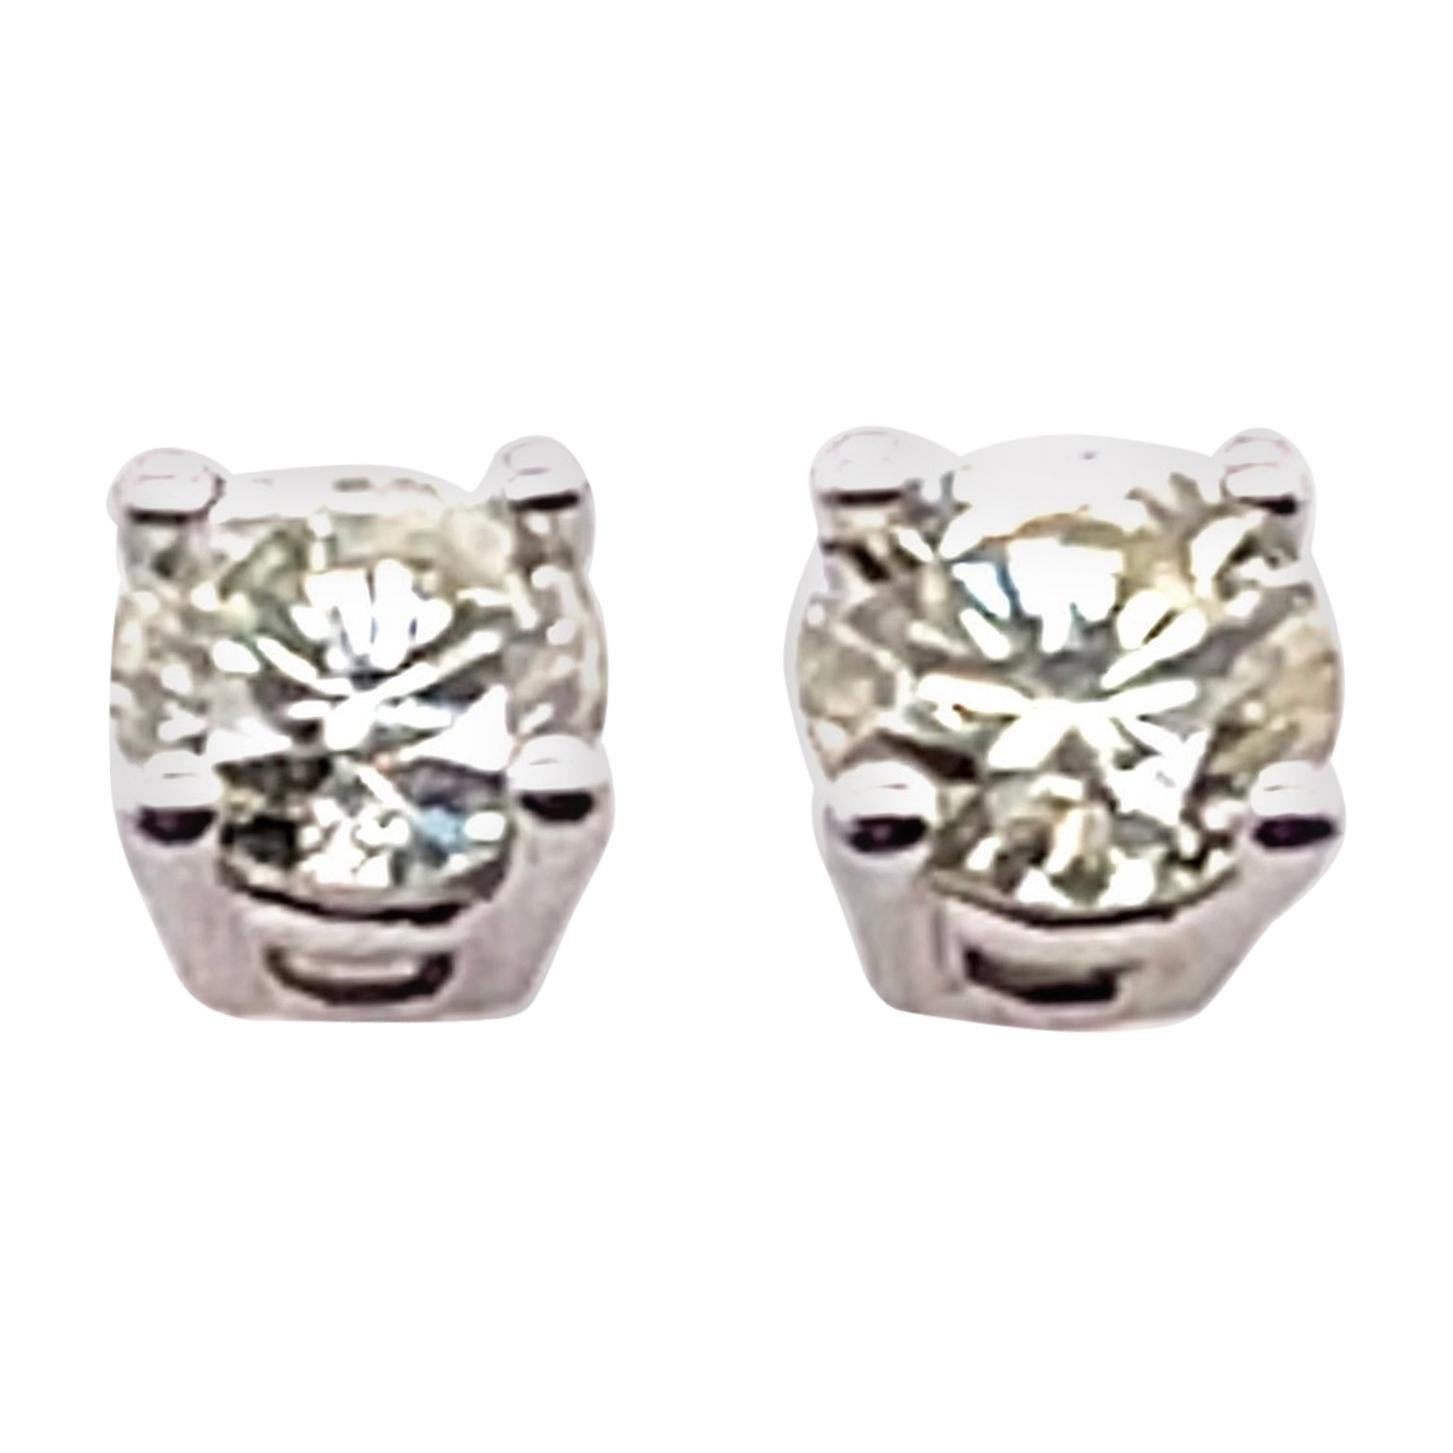 14 Karat White Gold and Round Diamond Stud Earrings Screw Back